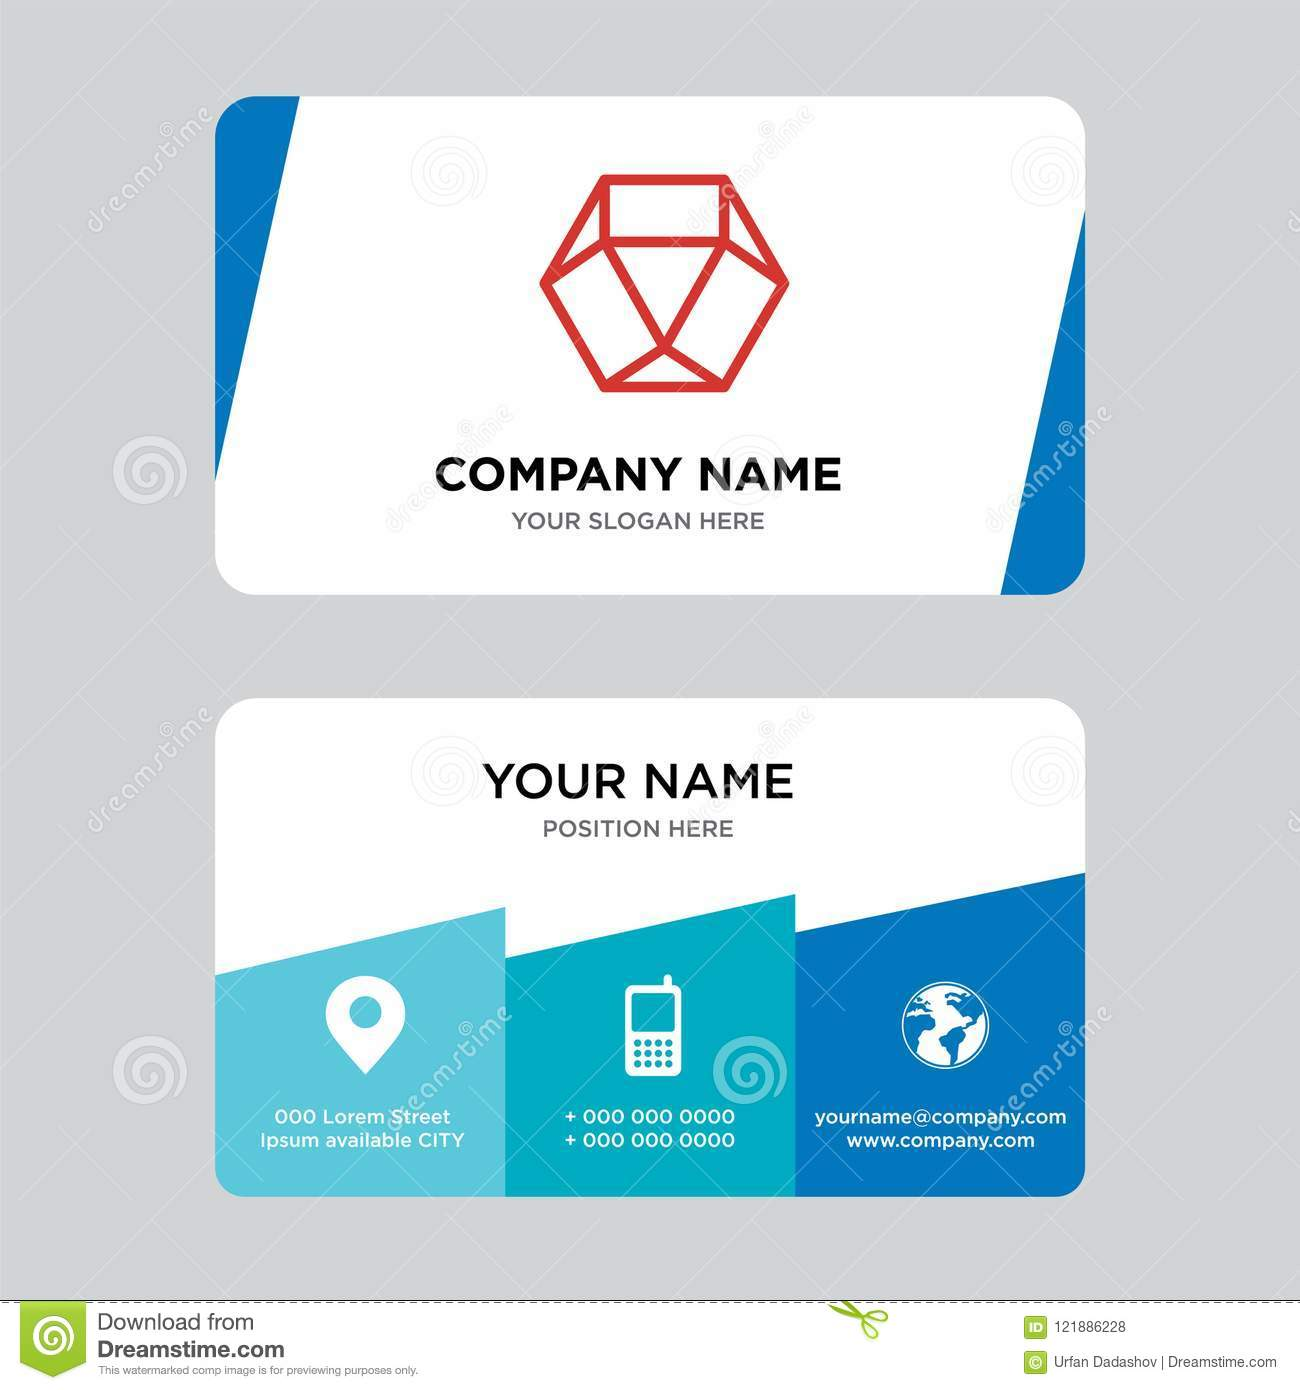 Dodecahedron Business Card Design Template, Visiting For Your ...